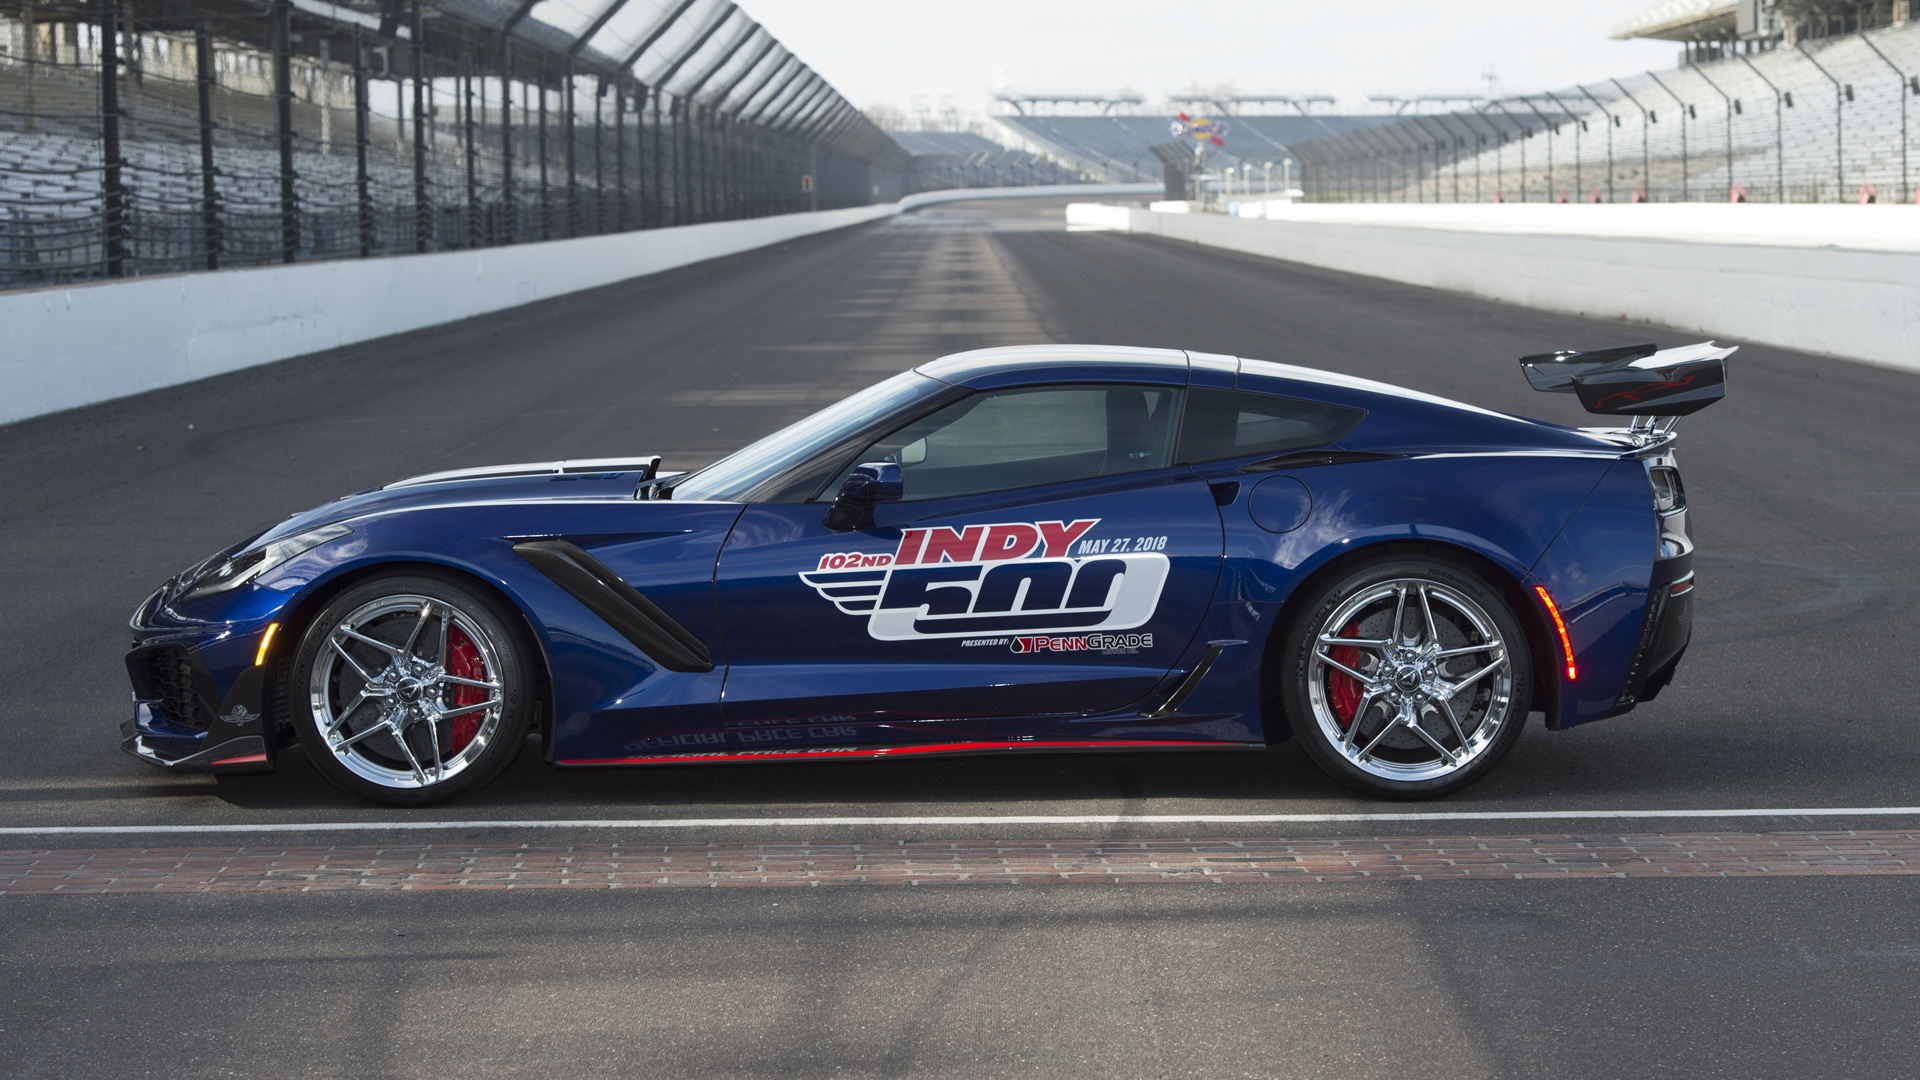 2019 Indy 500 Pace Car: 2019 Corvette ZR1 Is Most Powerful Pace Car In Indy 500